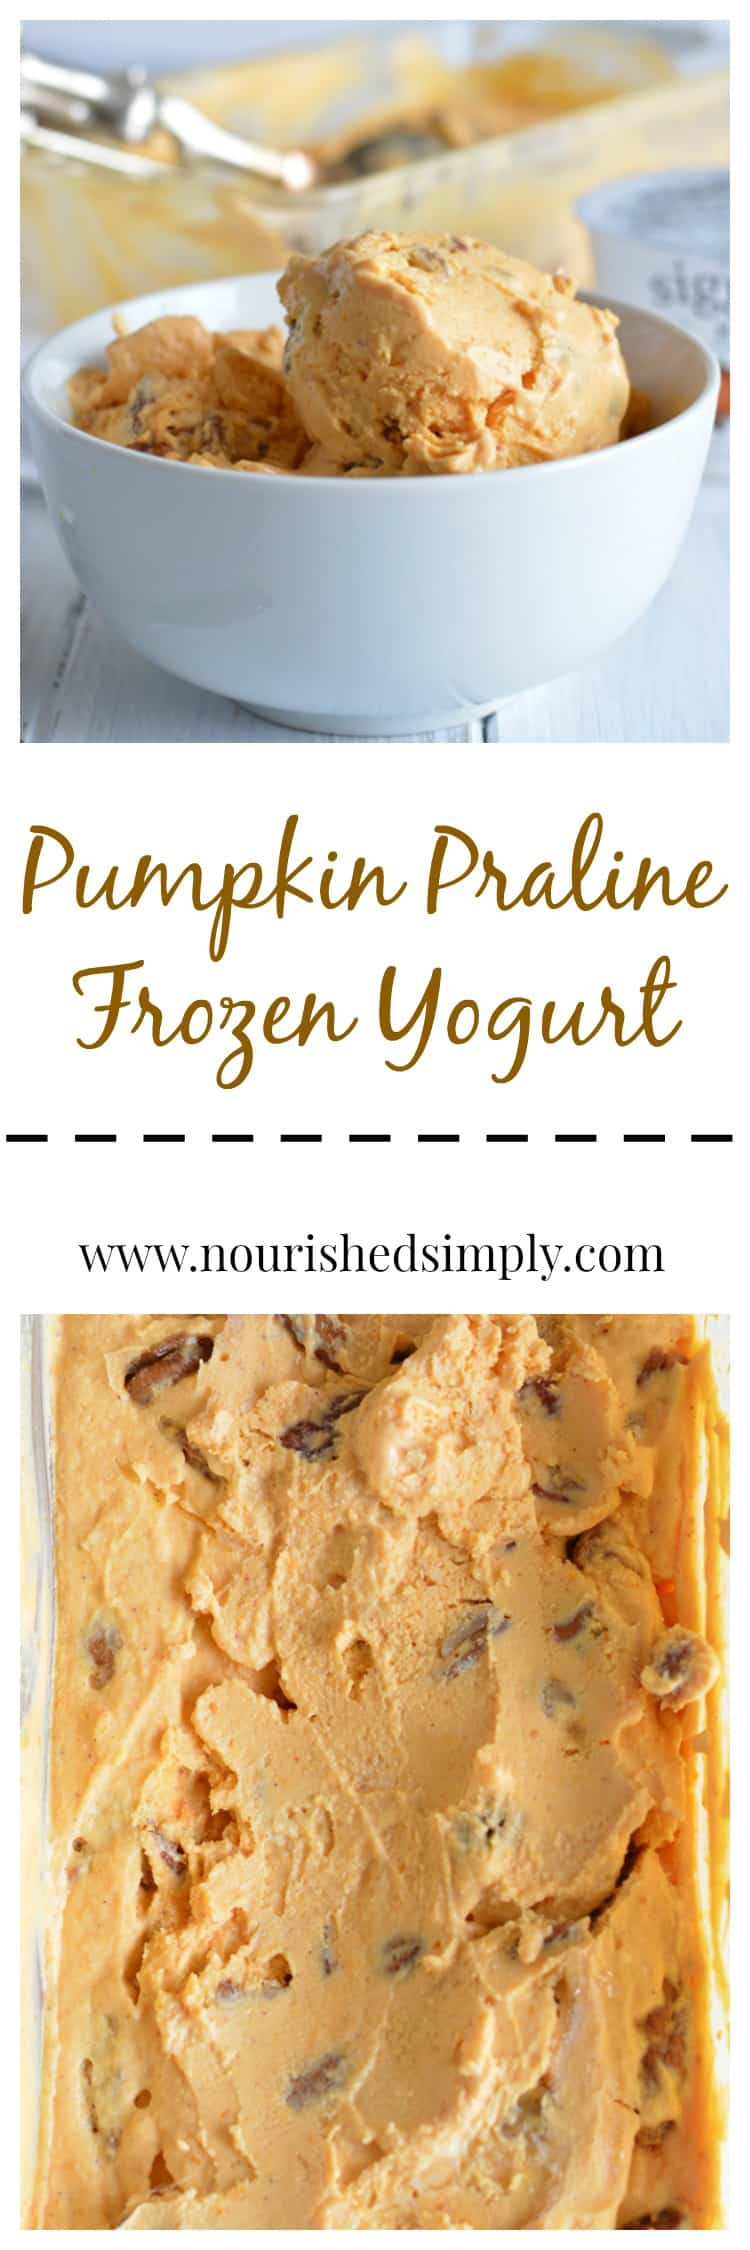 Pumpkin Praline Frozen Yogurt